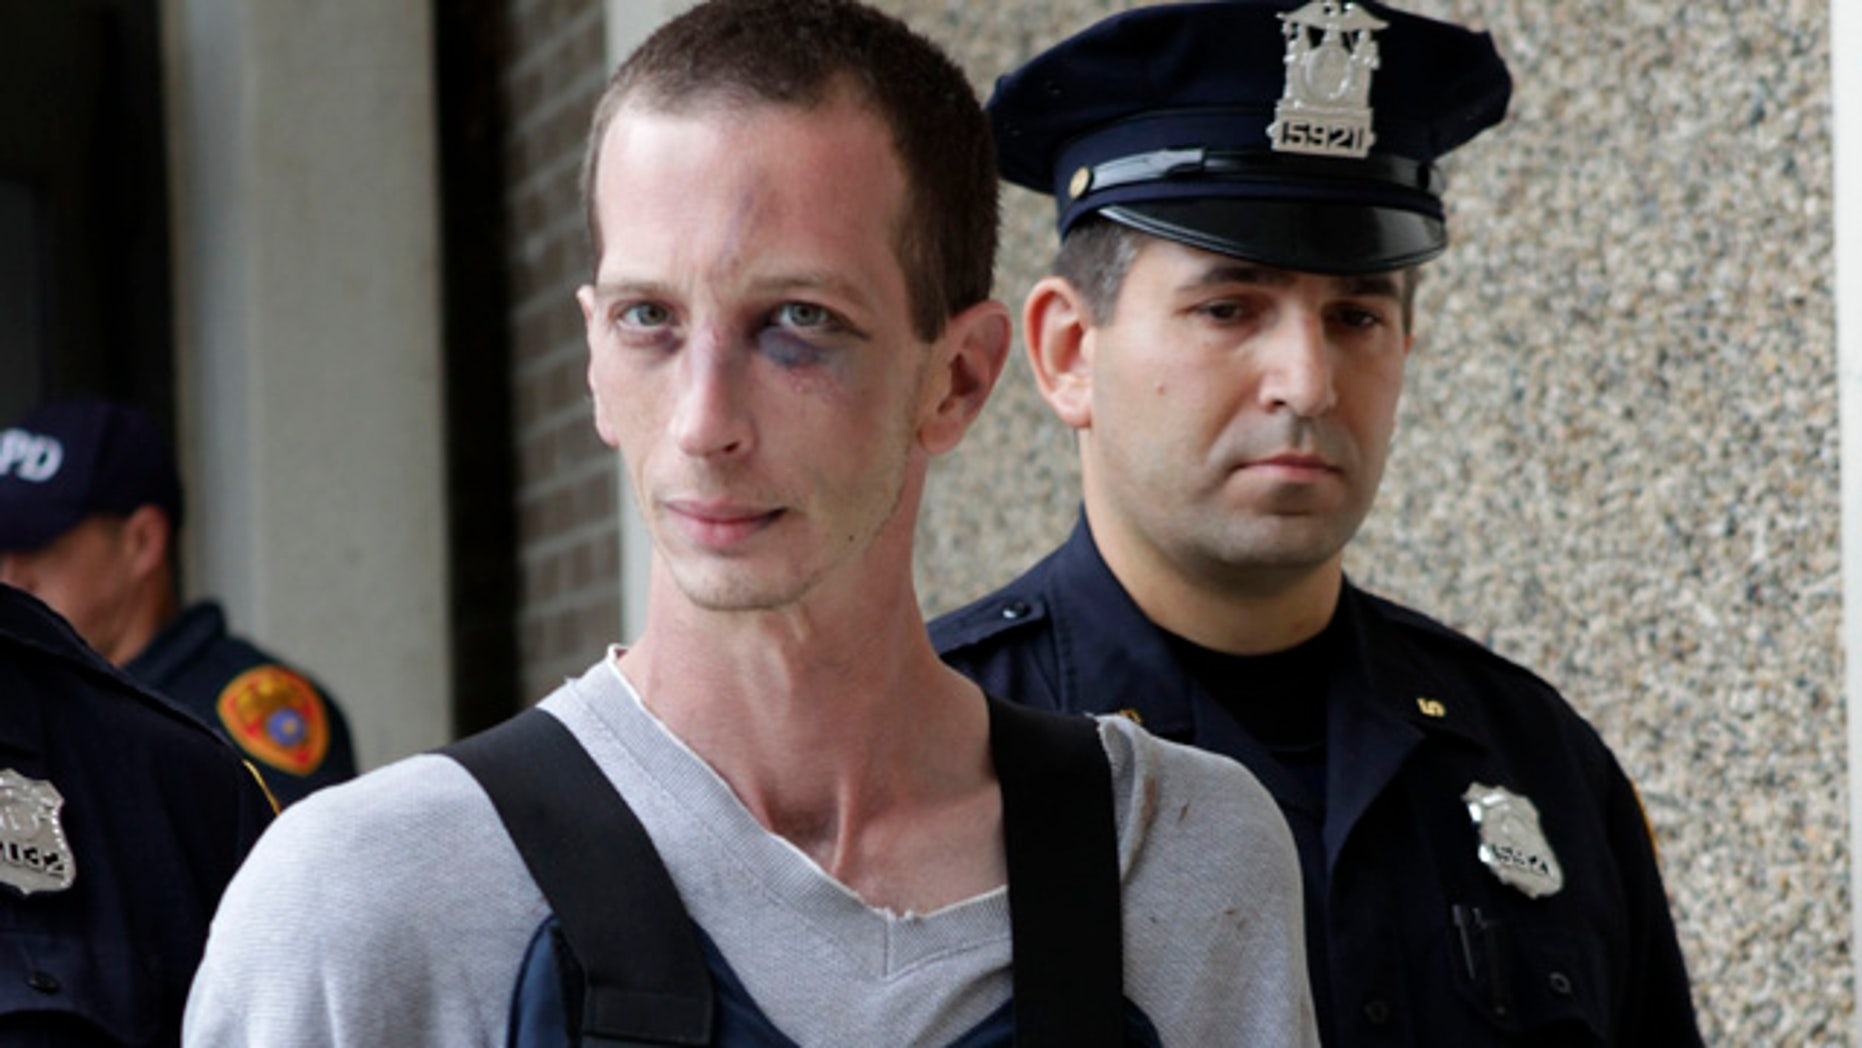 June 23: David Laffer is escorted out of a police station in Patchogue, N.Y.